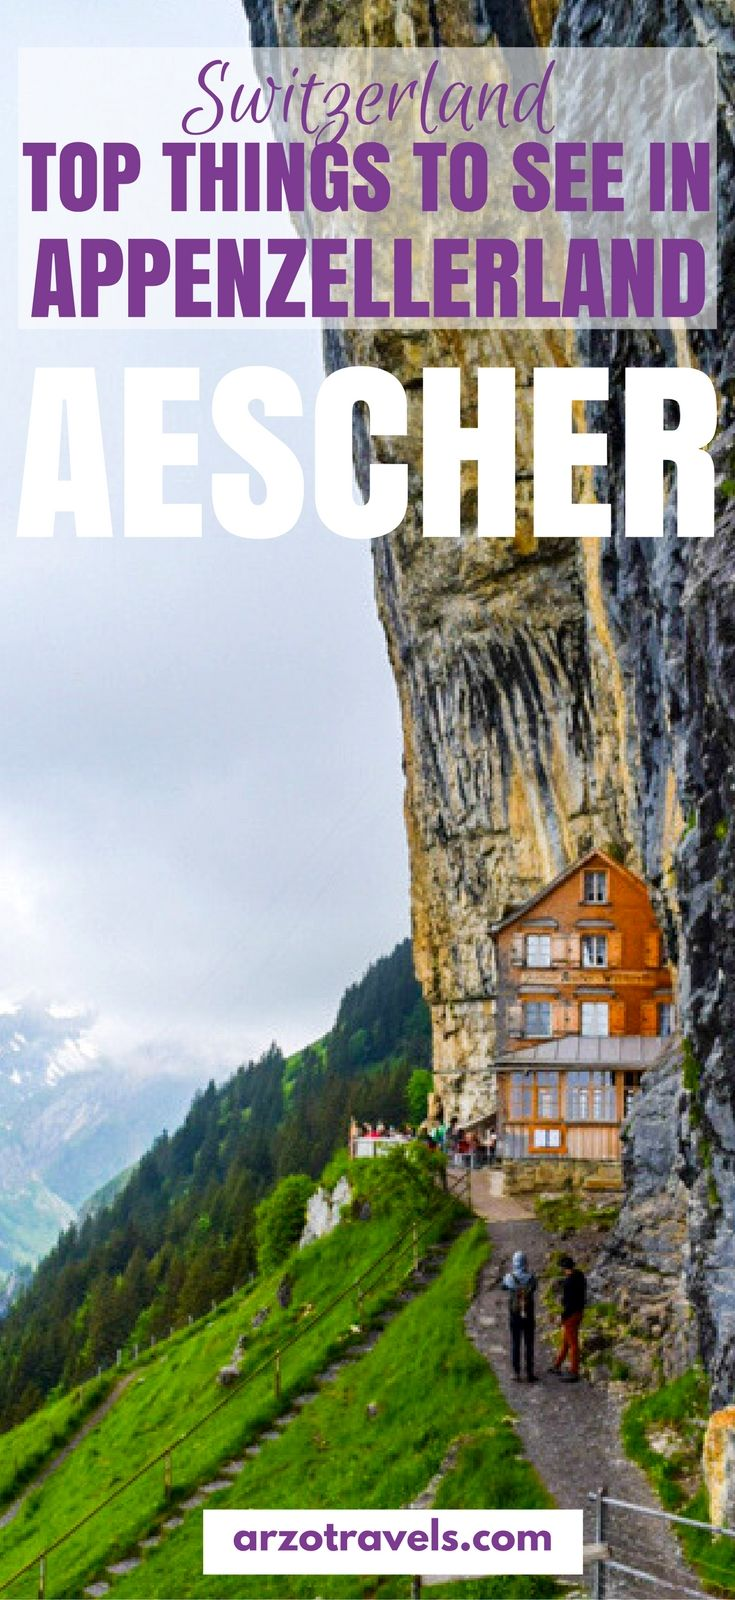 The Aescher is one highlight but not the only must-see place in Appenzellerland. Find out what else to see and what to din Appenzell and Appenzellerland in 24 hours. #Appenzell #ebenalp #schweiz